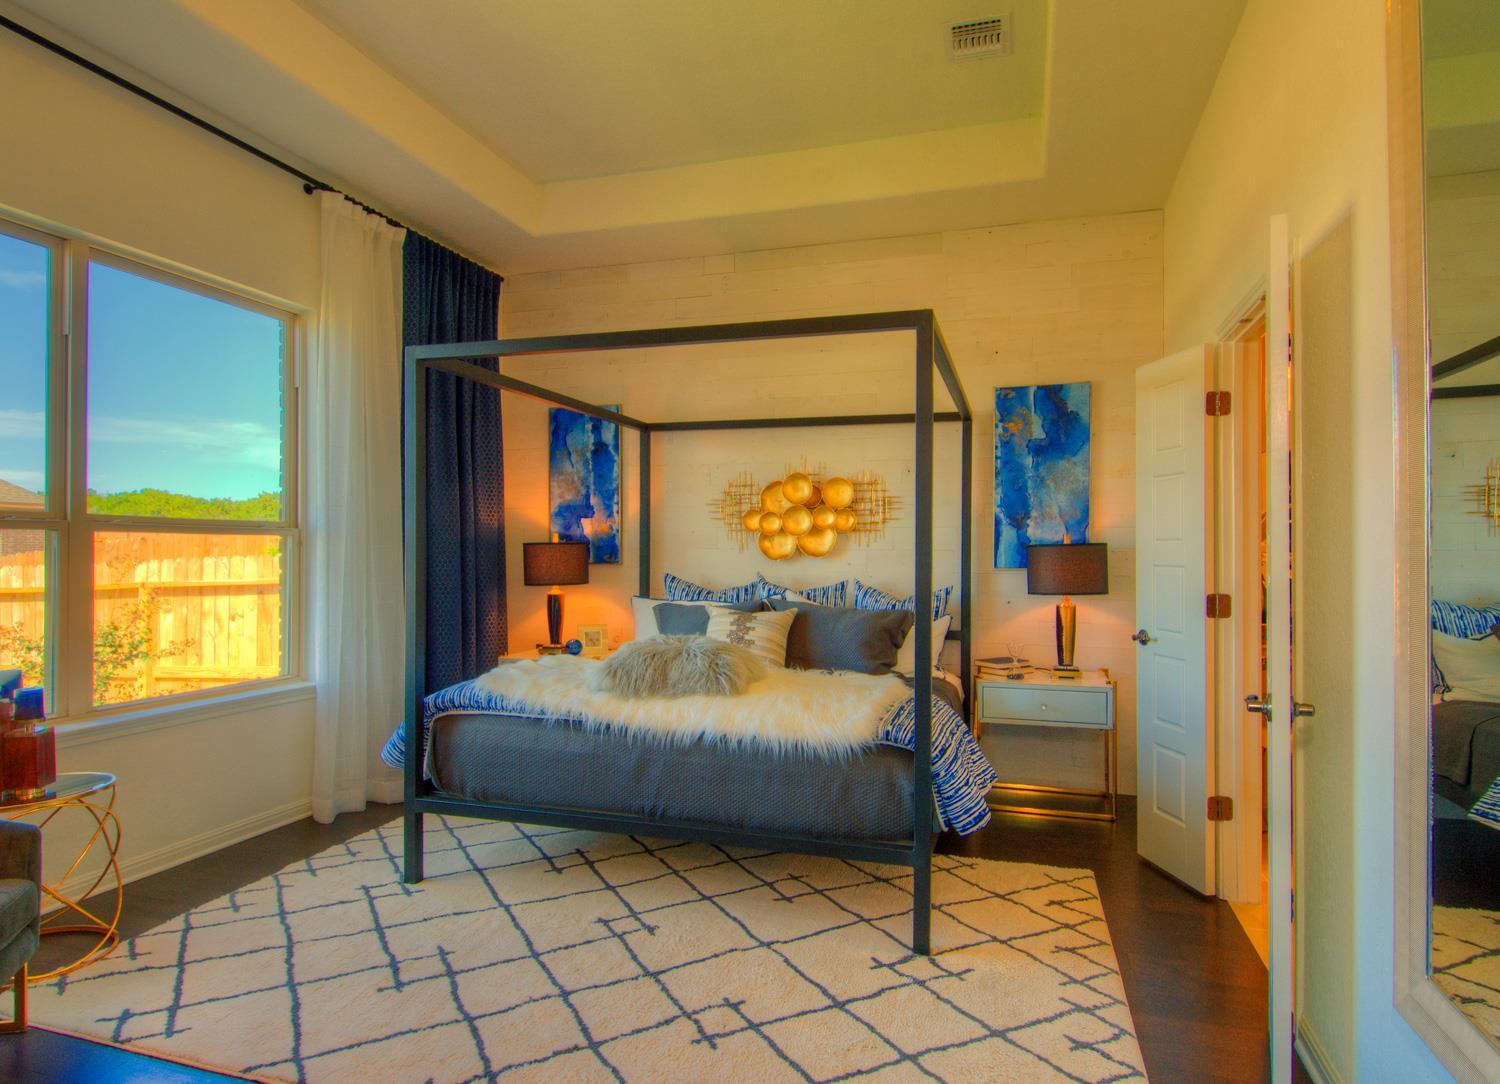 Bedroom featured in the Roma Weston Oaks By Sitterle Homes in San Antonio, TX